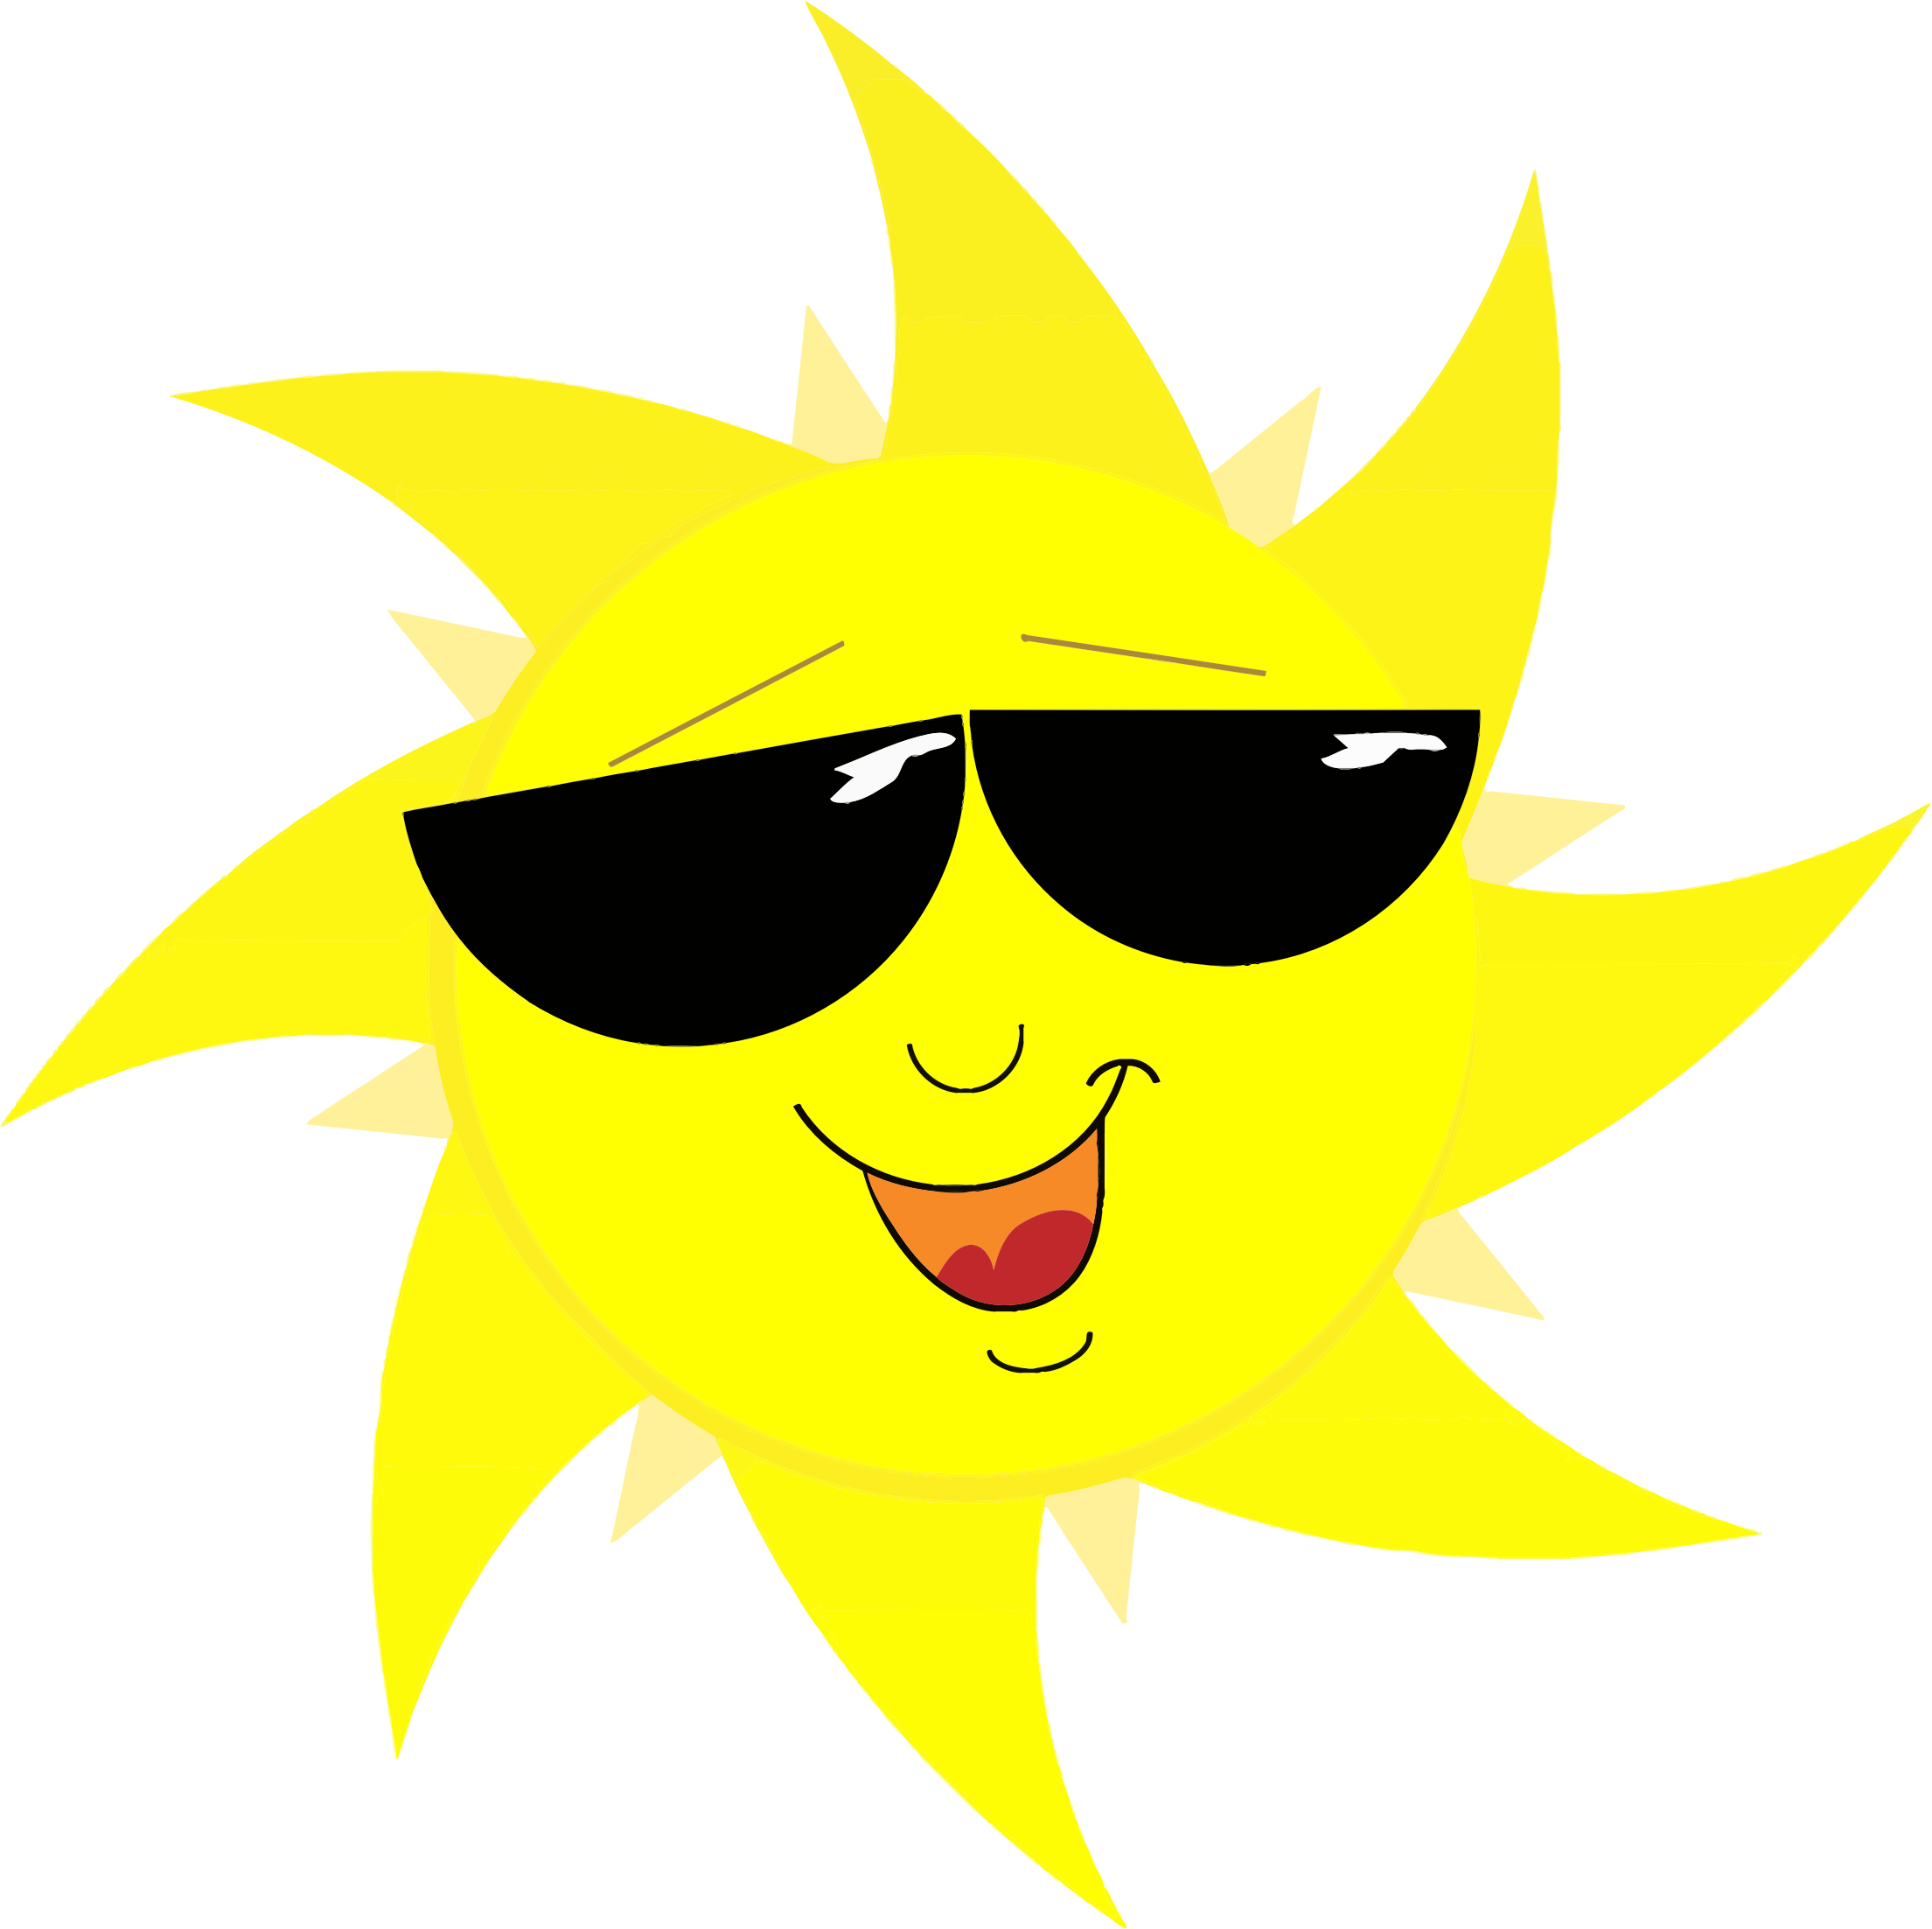 Free sun with sunglasses clipart banner freeuse Clipart - Smiling Sun With Sunglasses banner freeuse